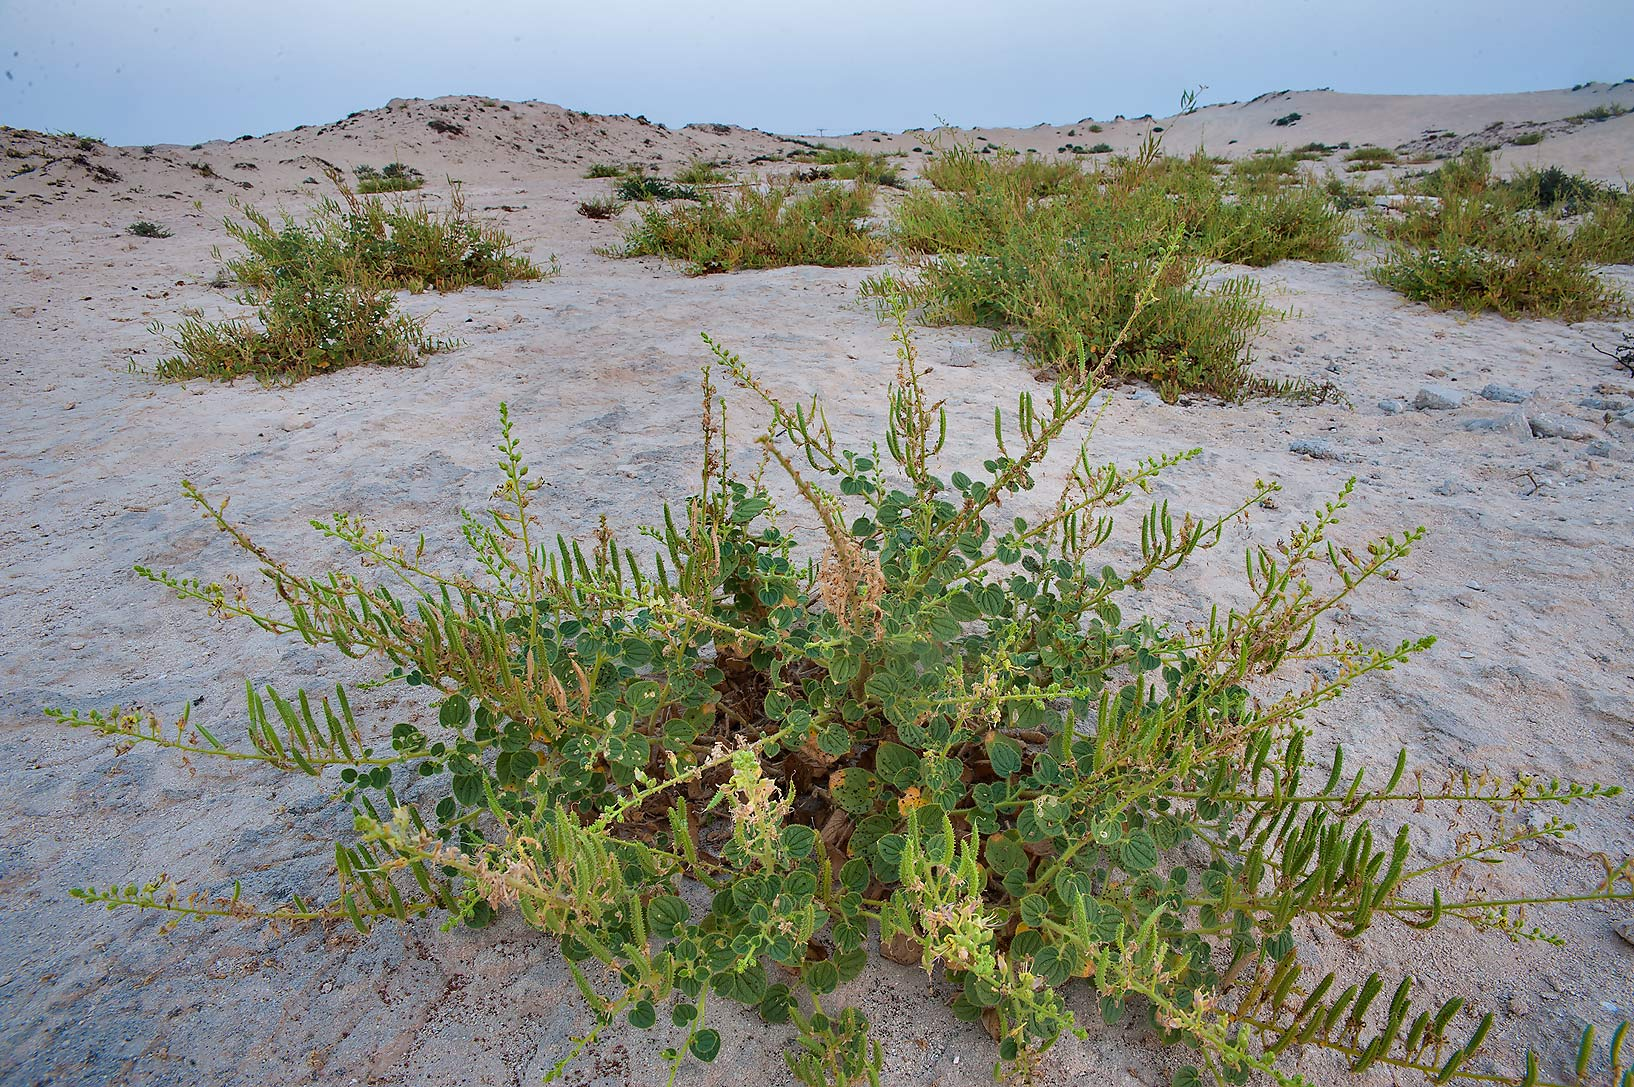 Plant of Cleome noeana with seeds growing between hills near Fuwairit. Northern Qatar